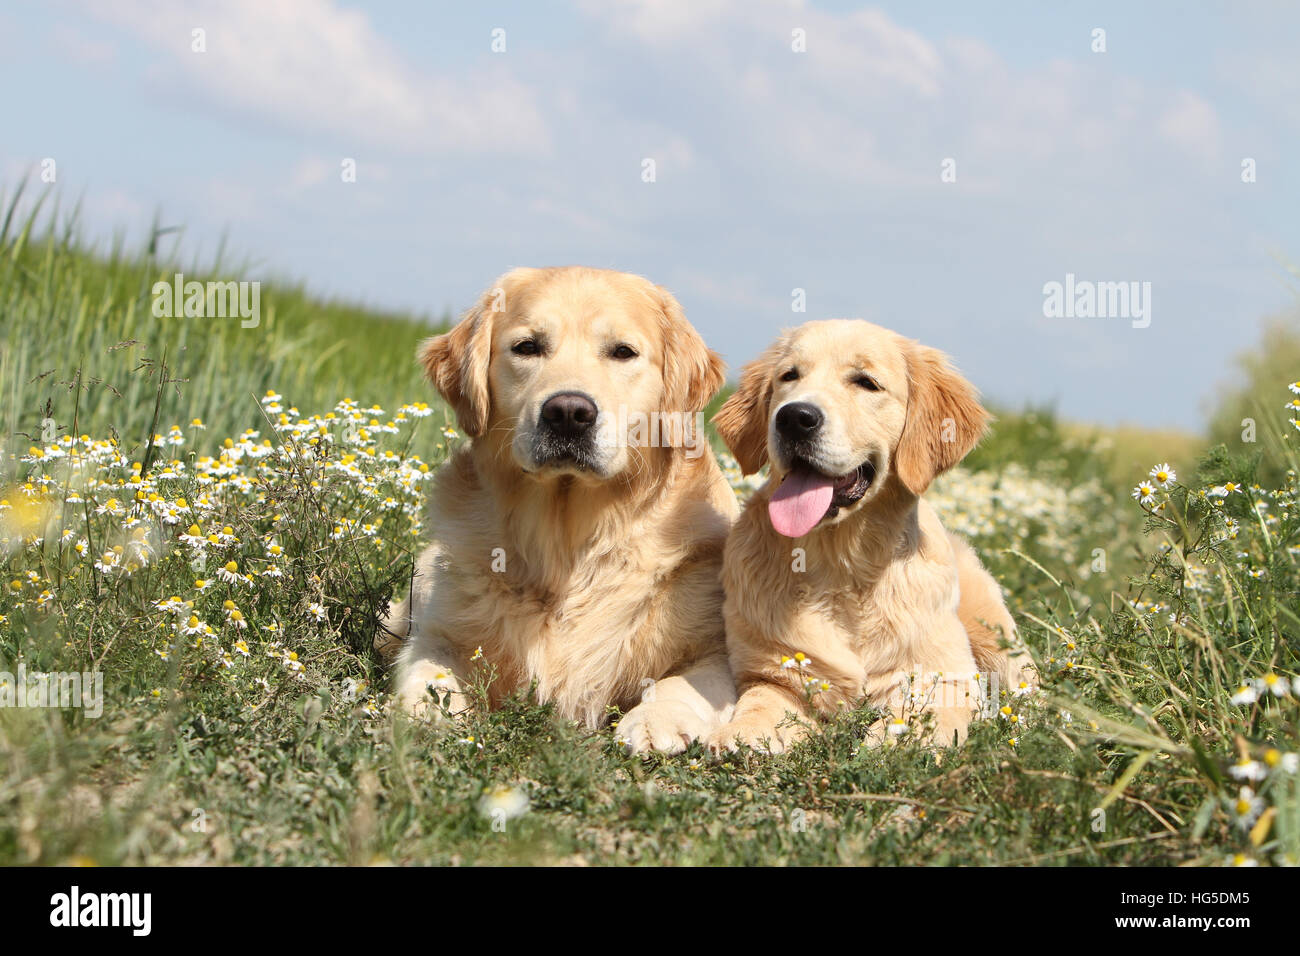 Dog Golden Retriever  two adults lying on the ground - Stock Image